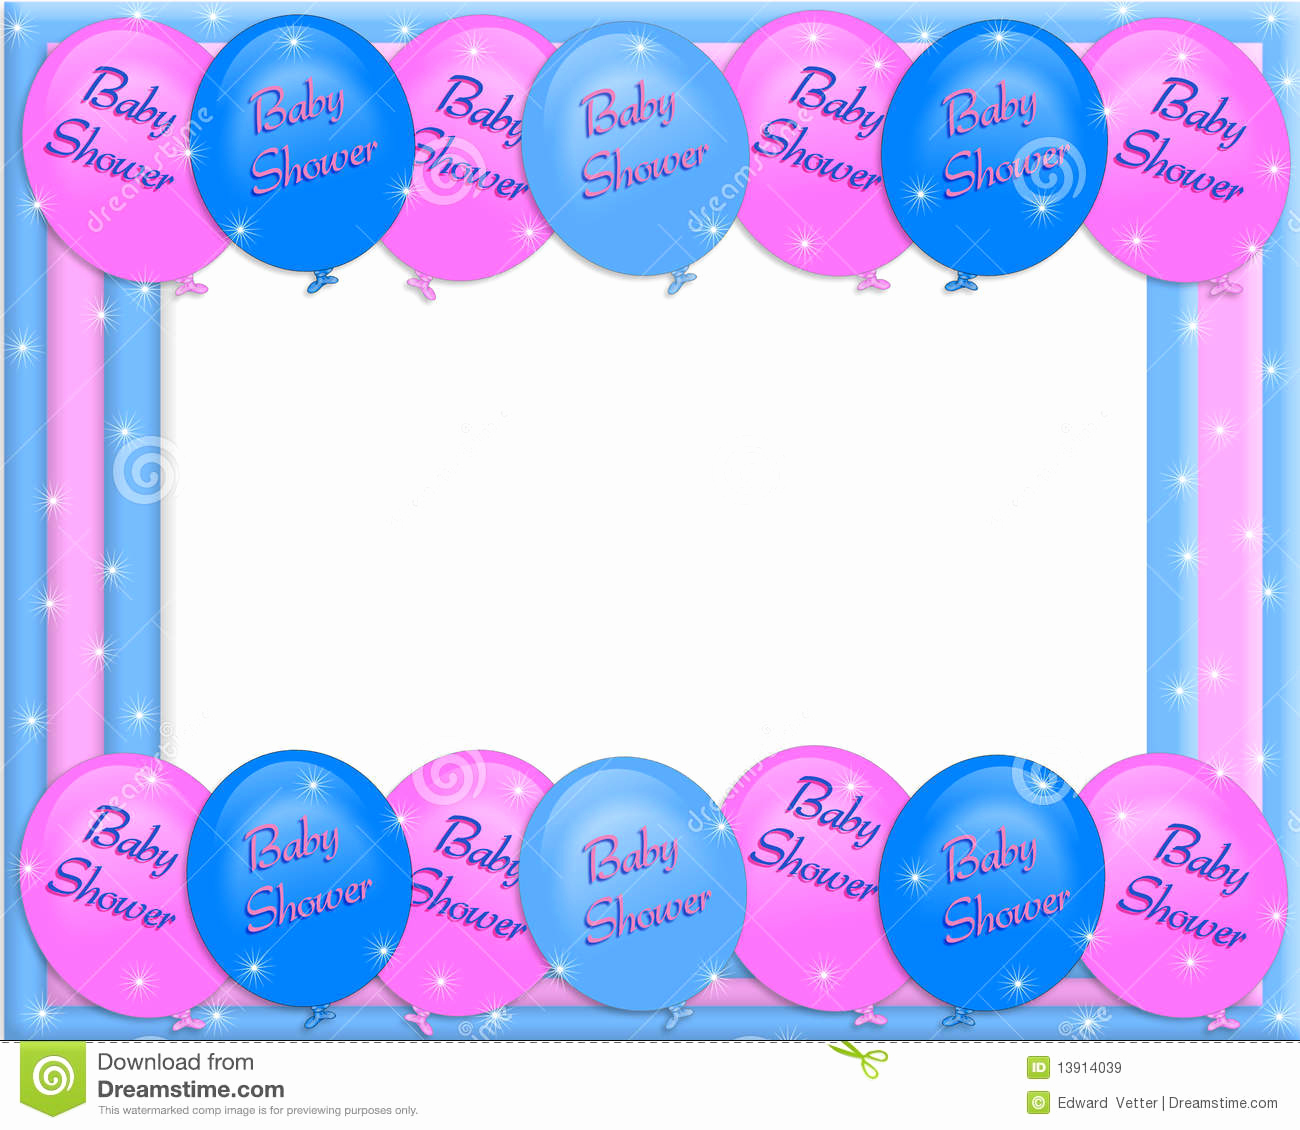 Baby Shower Invitation Clipart Lovely Baby Clipart Invitation Shower Png and Cliparts for Free